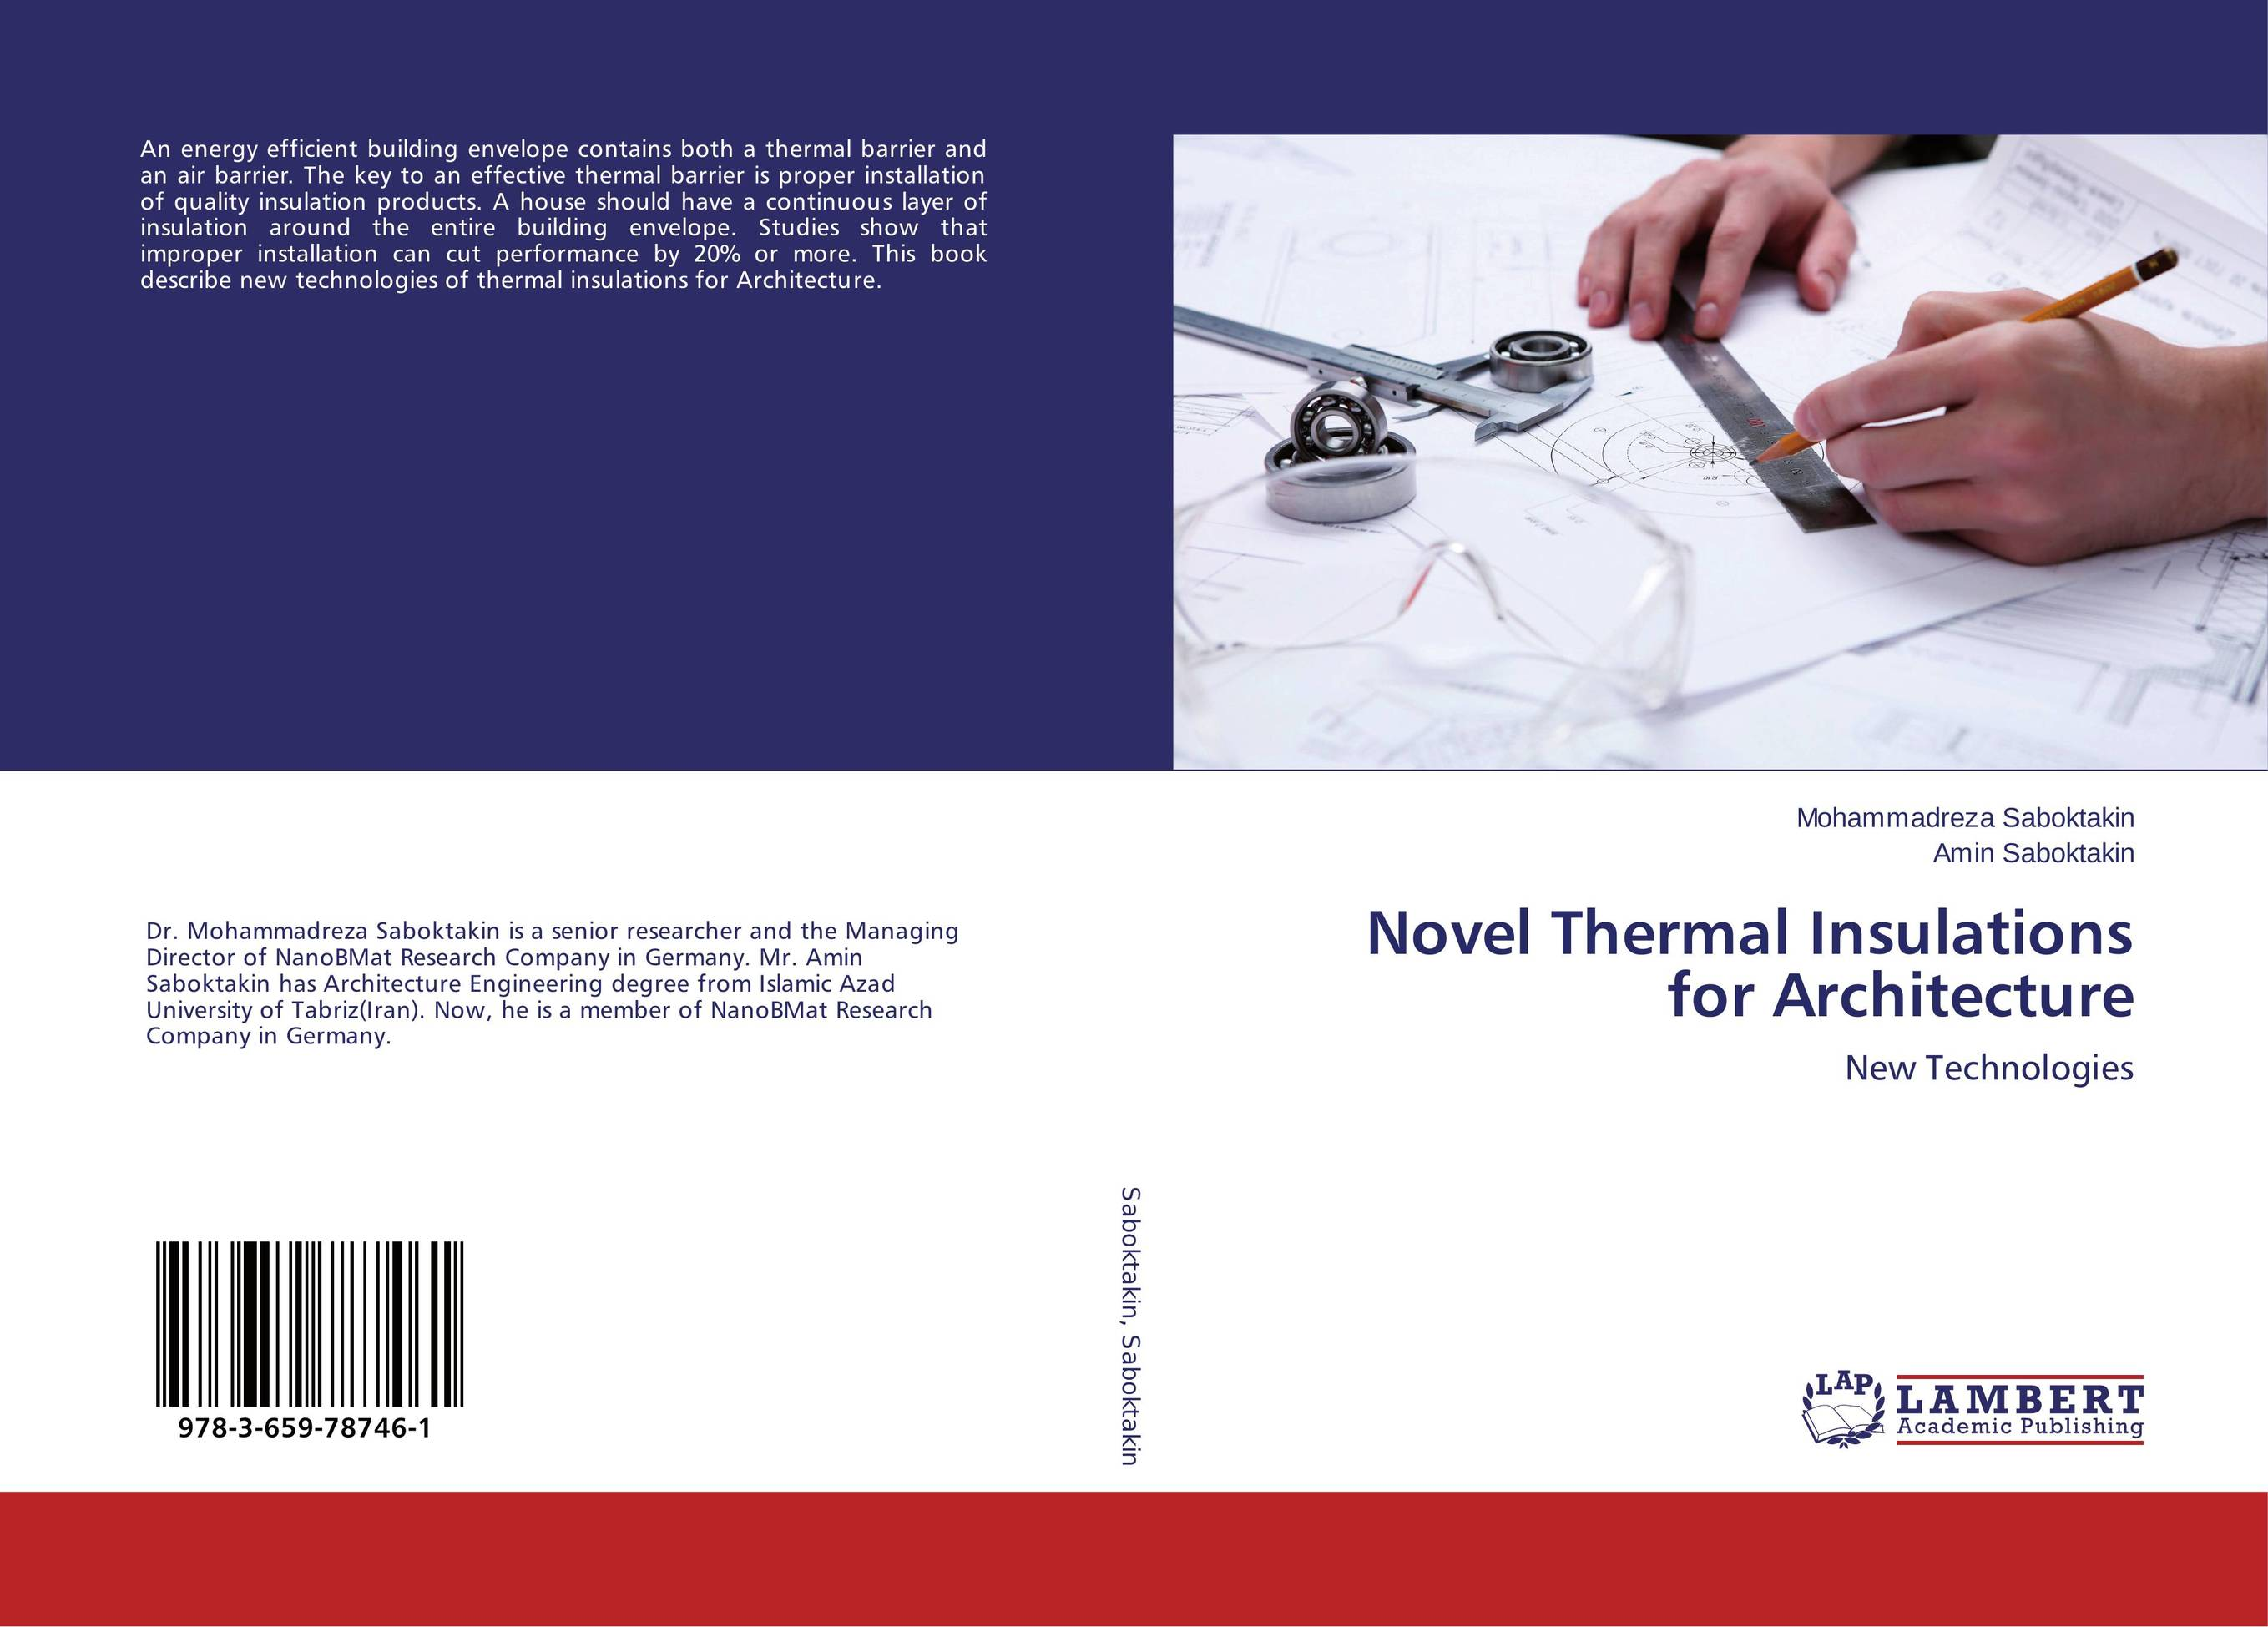 Novel Thermal Insulations for Architecture seek thermal